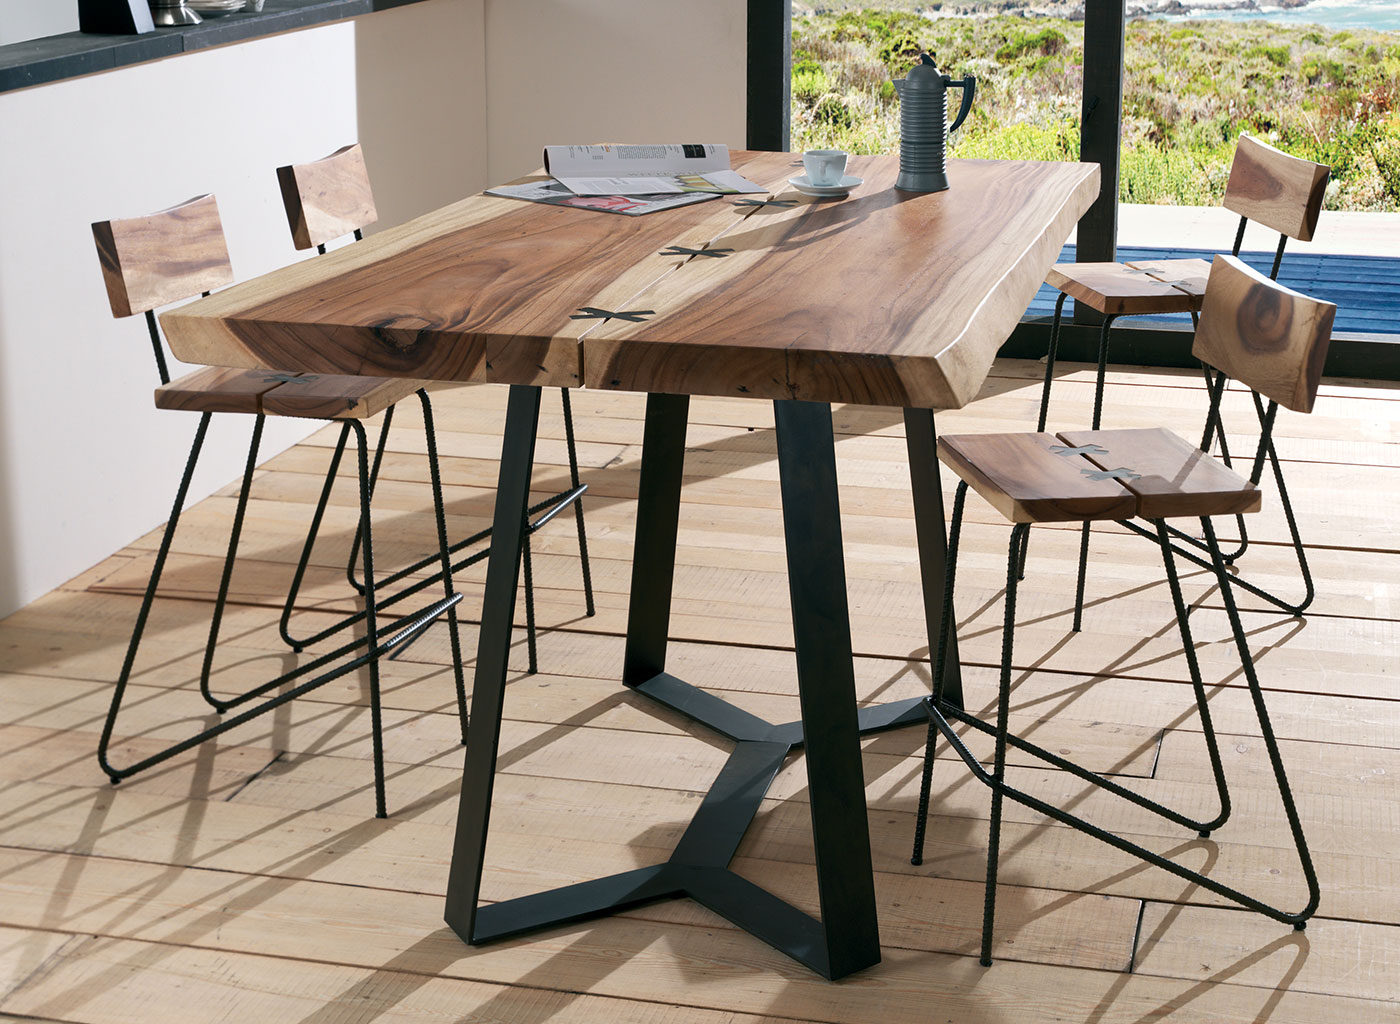 Mobilier Cafe Restaurant Table Bois Restaurant Sz84 Jornalagora